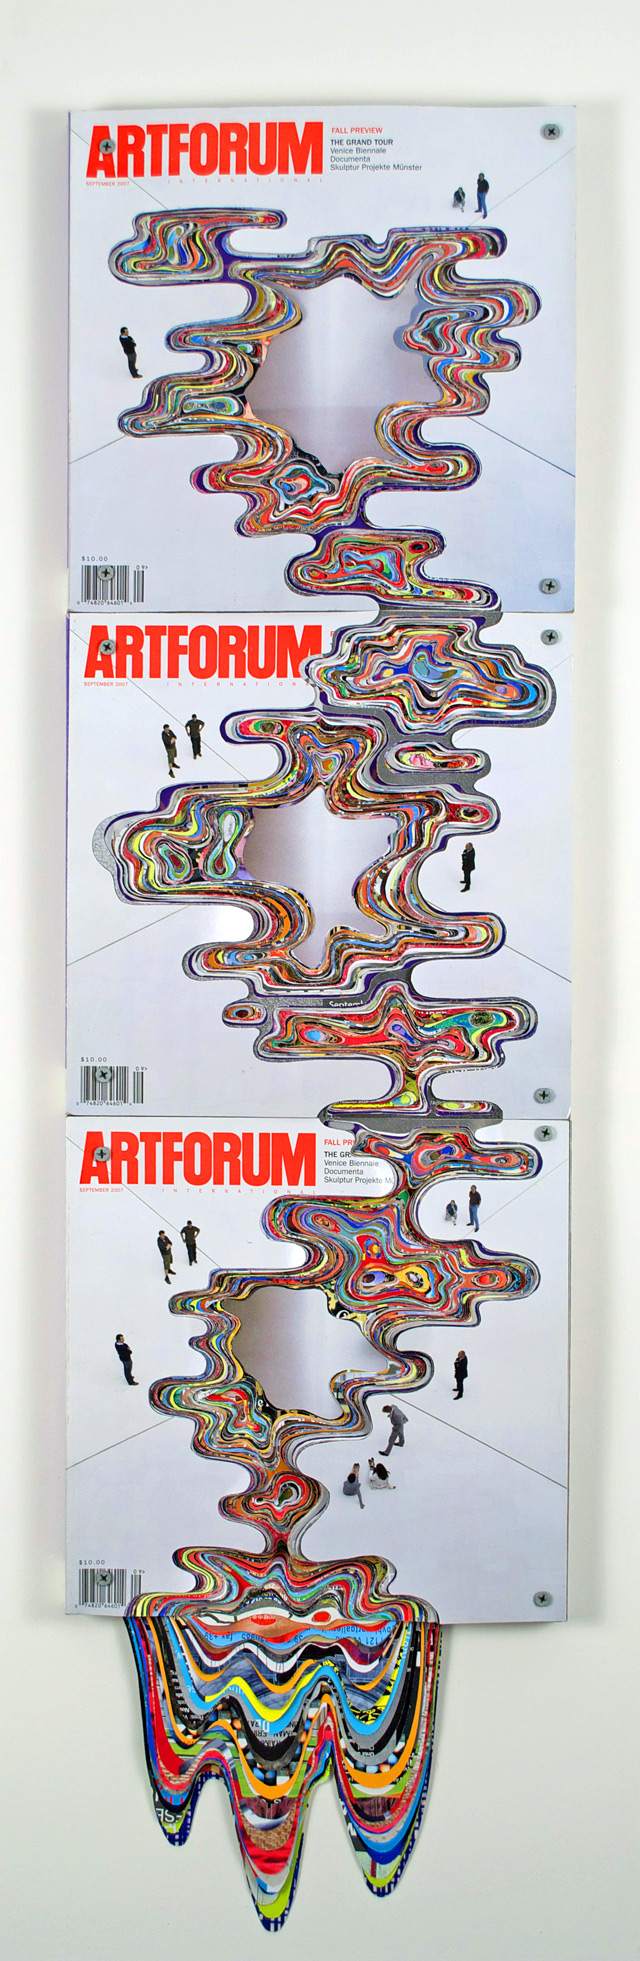 Language In 45 And 47 Stella Street: Artforum Magazines Carved Into Dripping Waves Of Color By